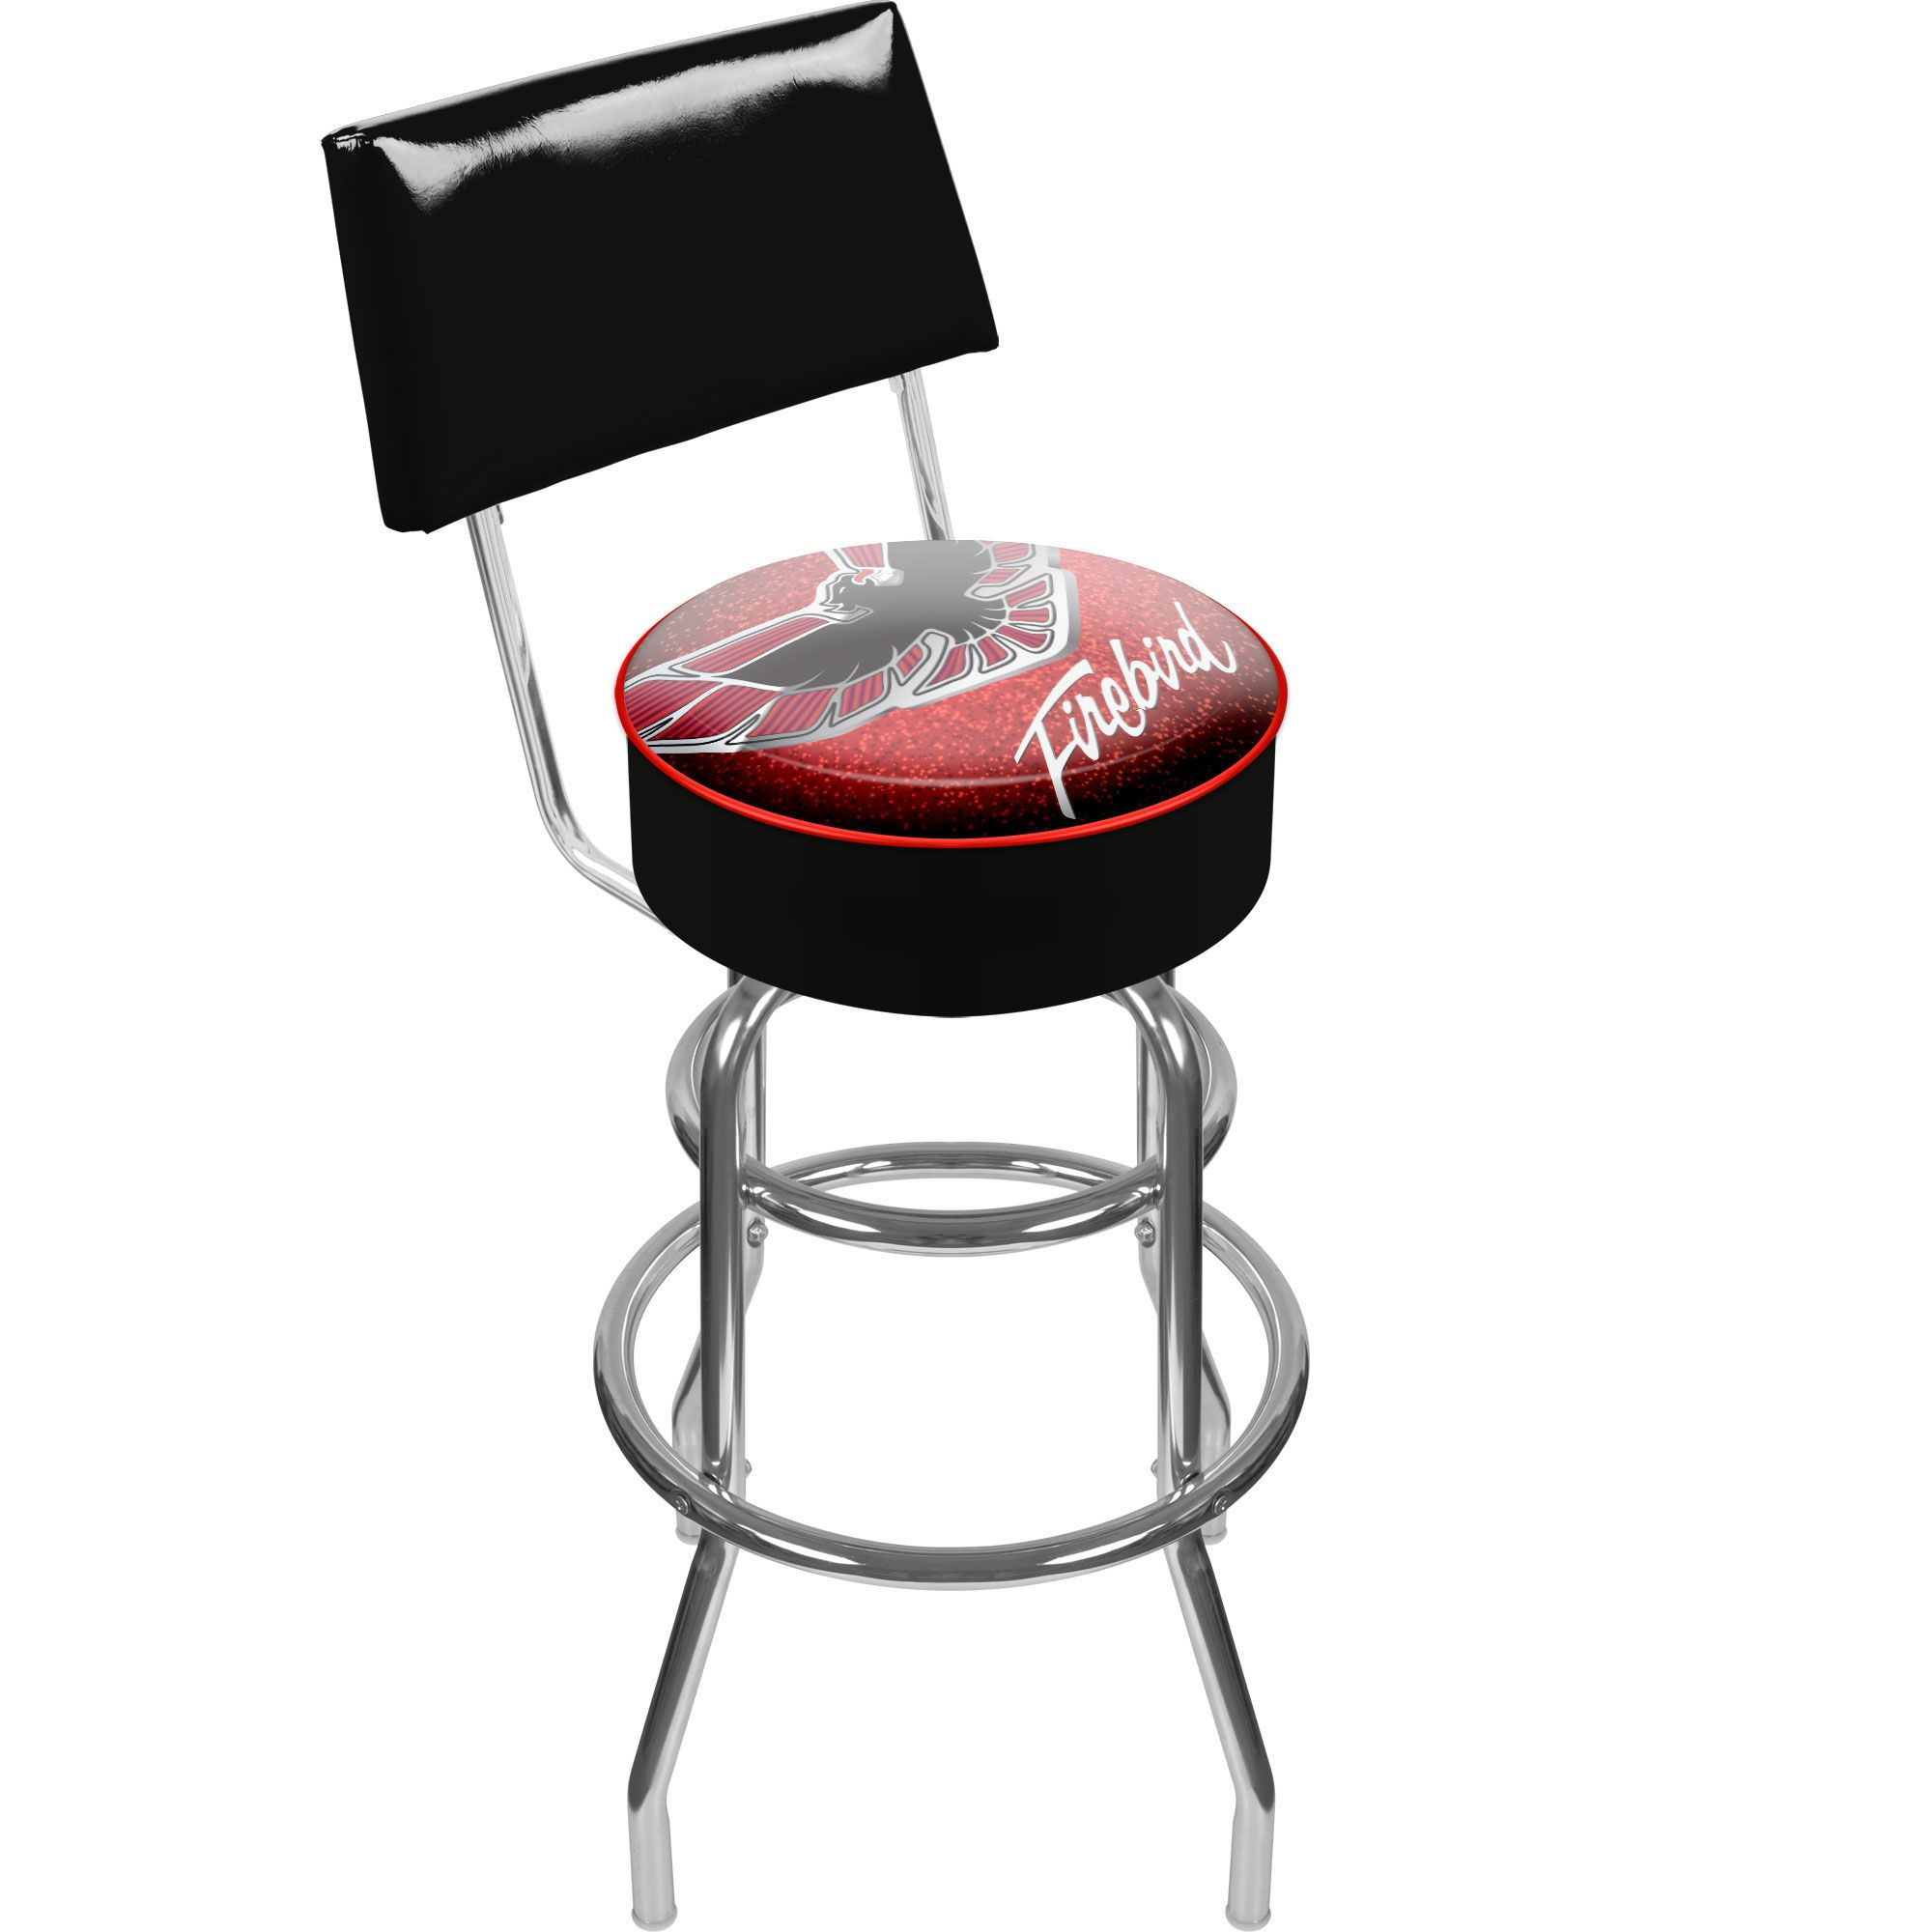 swivel chair exercise ergonomic design pdf pontiac firebird red padded bar stool with back